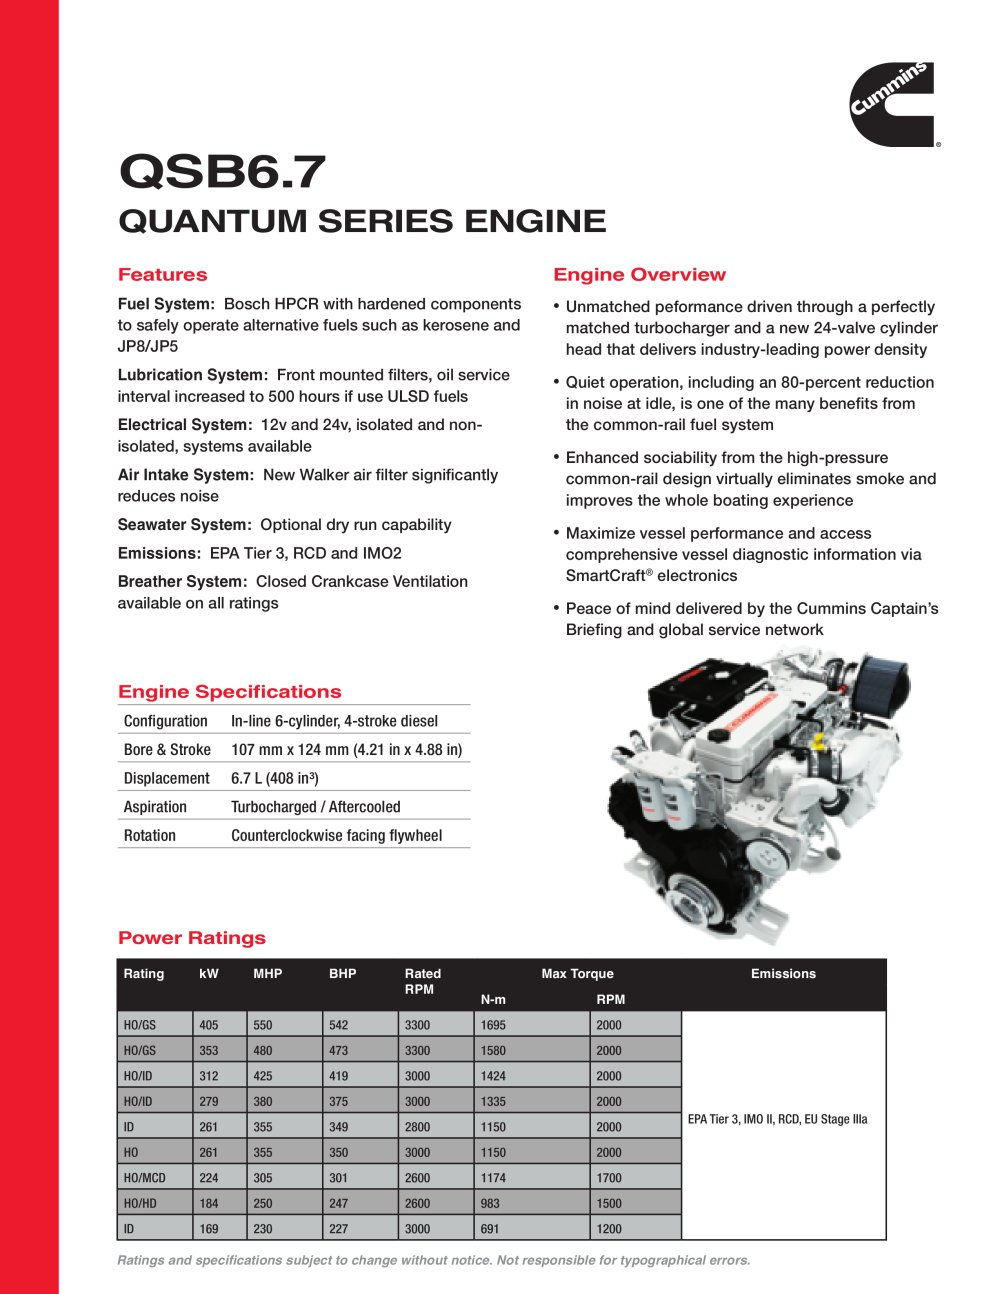 QSB6.7 Quantum Series Engine - 1 / 2 Pages